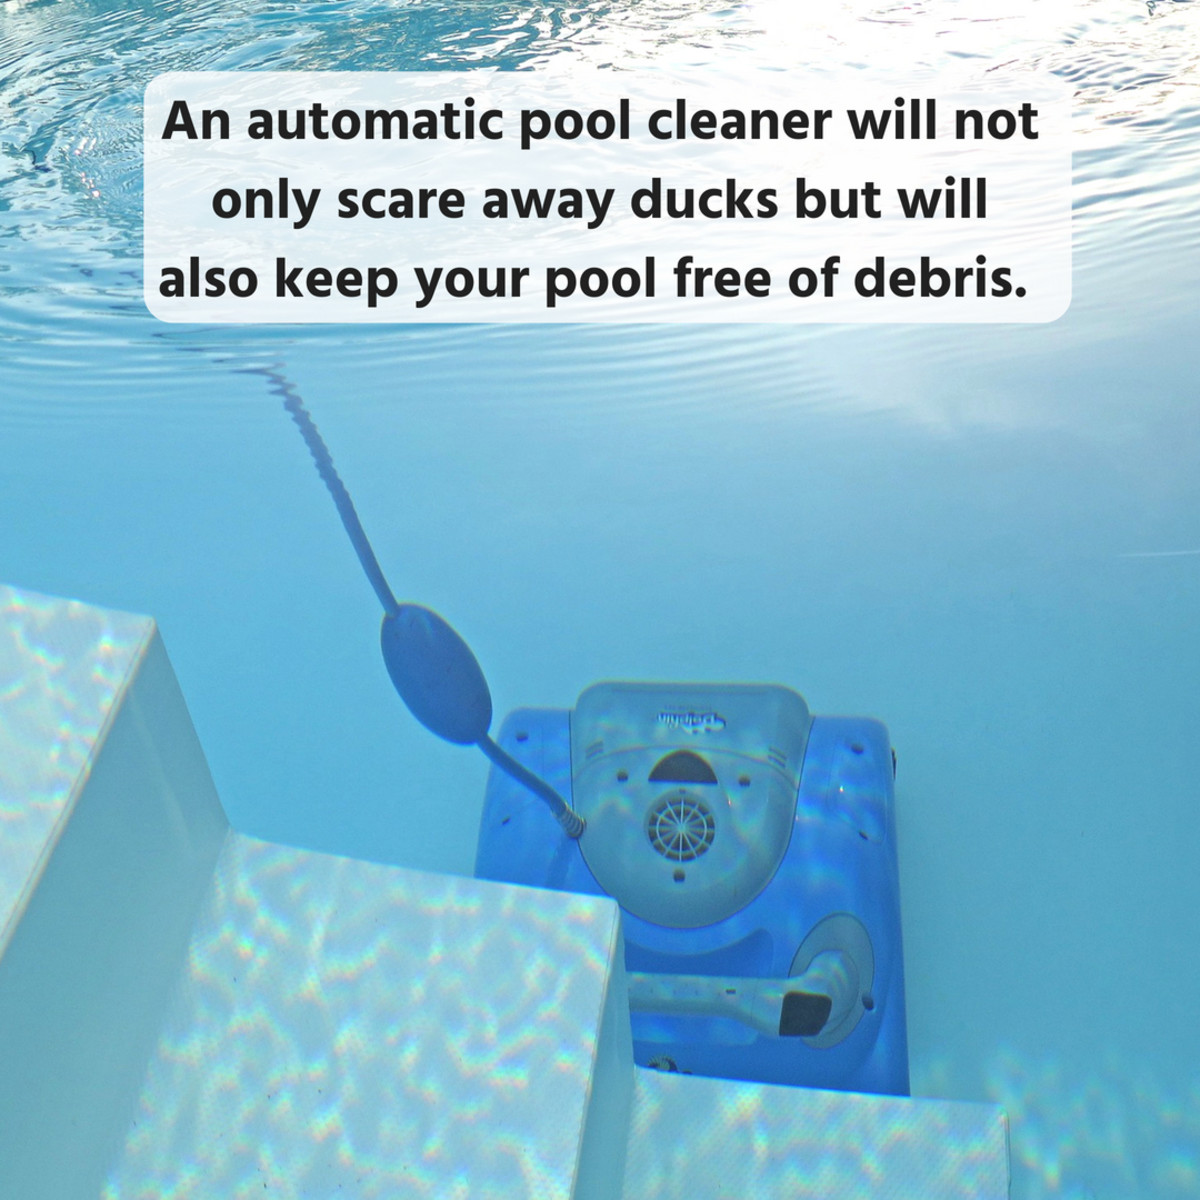 10-simple-tips-for-keeping-ducks-away-from-your-pool